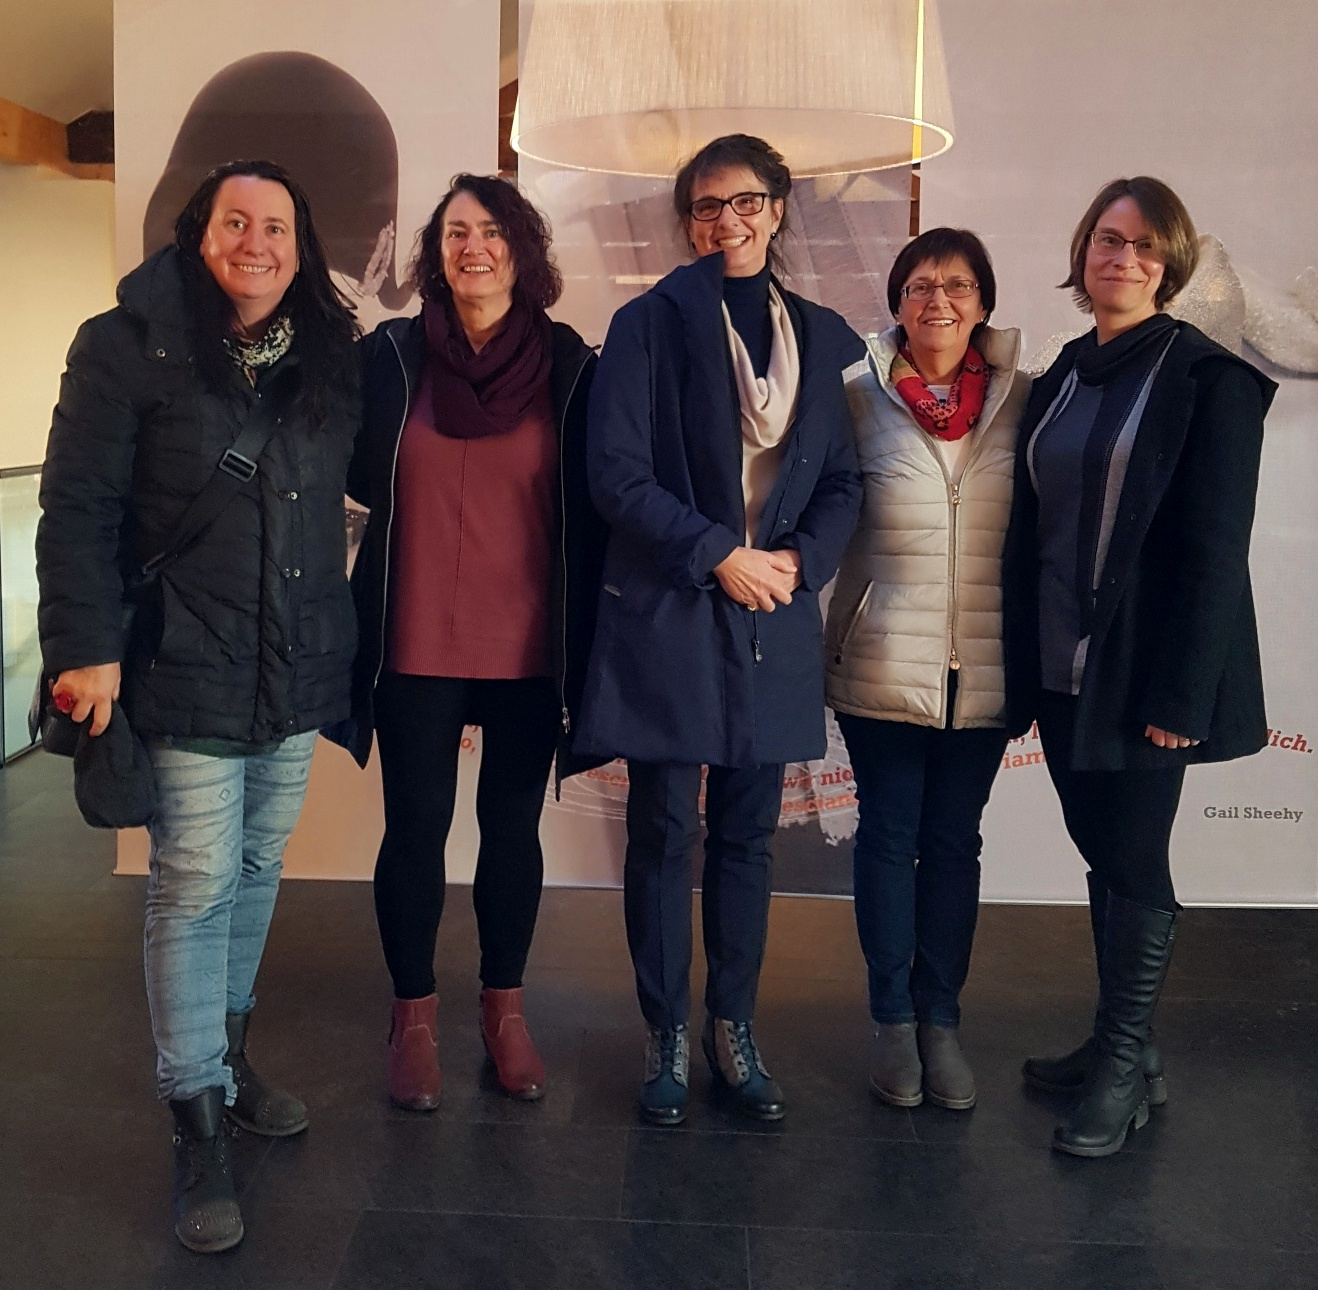 Visiting the Women's Museum in Meran in 2018: From left to right: Astrid Schönweger, IAWM; Dr. Kathy Sanford, University of Victoria; Dr. Darlene Clover, University of Victoria; Sissi Prader, Women's Museum Meran; and Dr. Nancy Taber, University Brock;